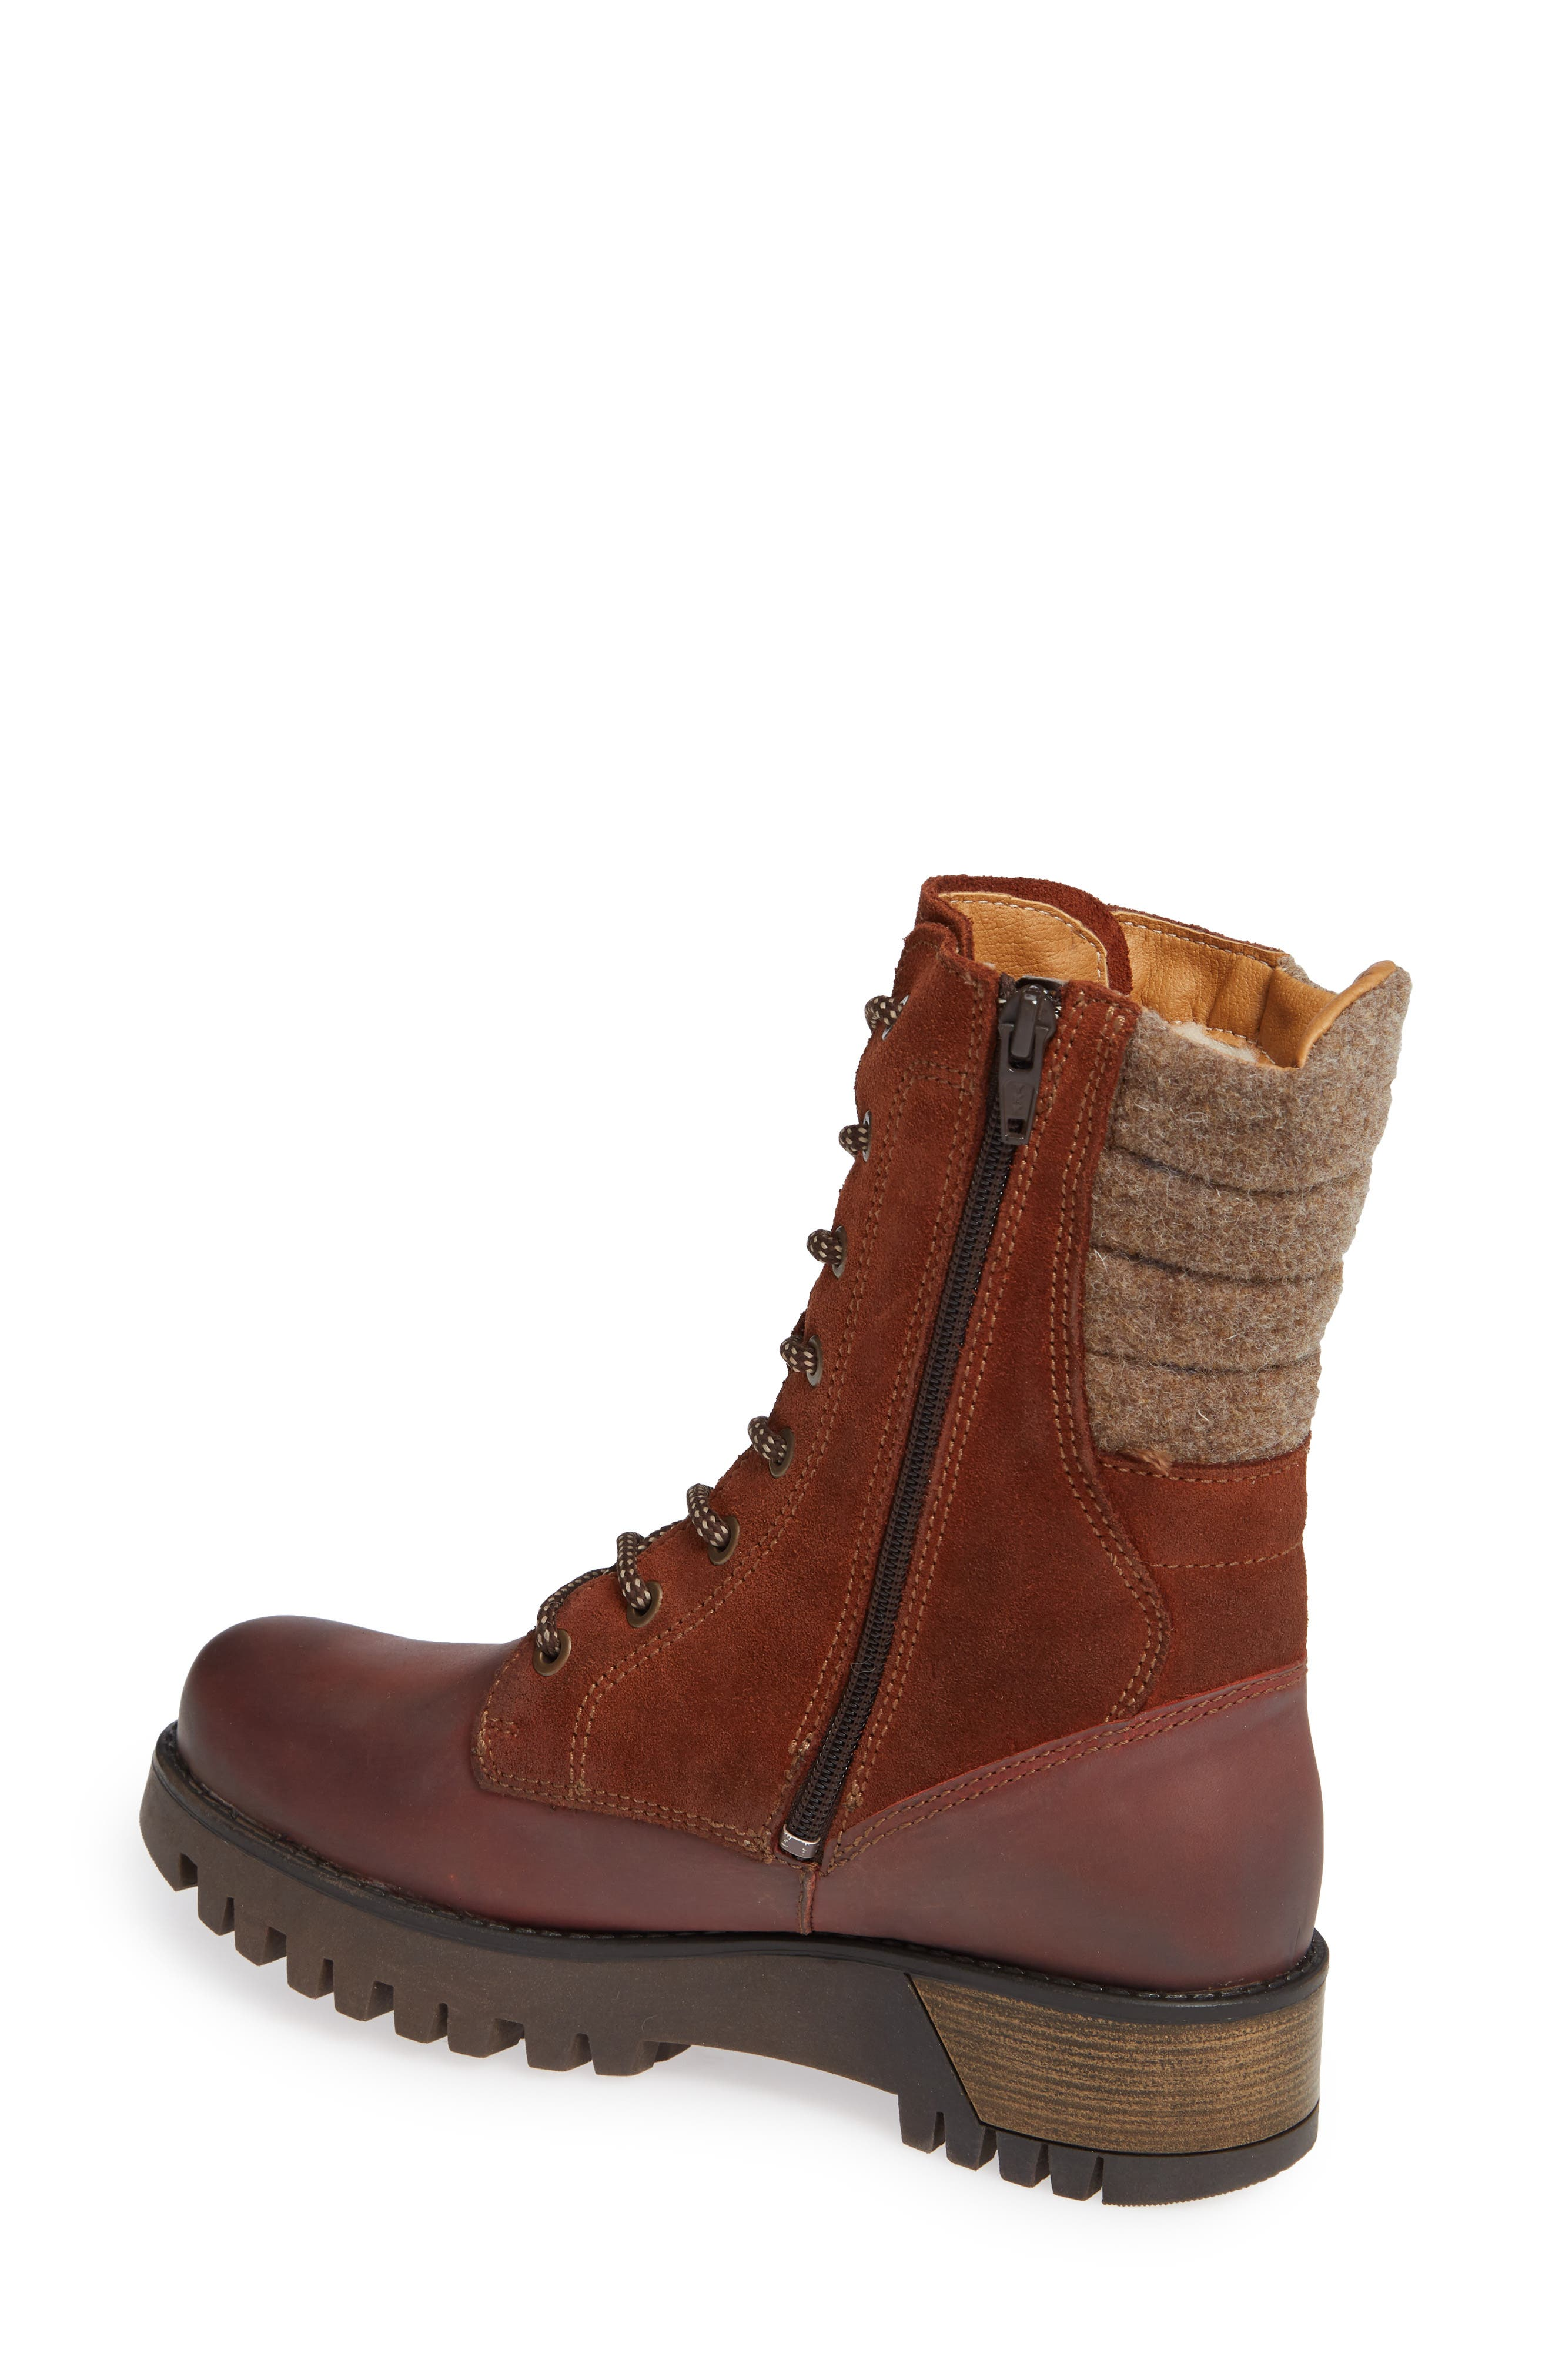 BOS. & CO.,                             Guide Waterproof & Insulated Hiking Boot,                             Alternate thumbnail 2, color,                             RUST SUEDE